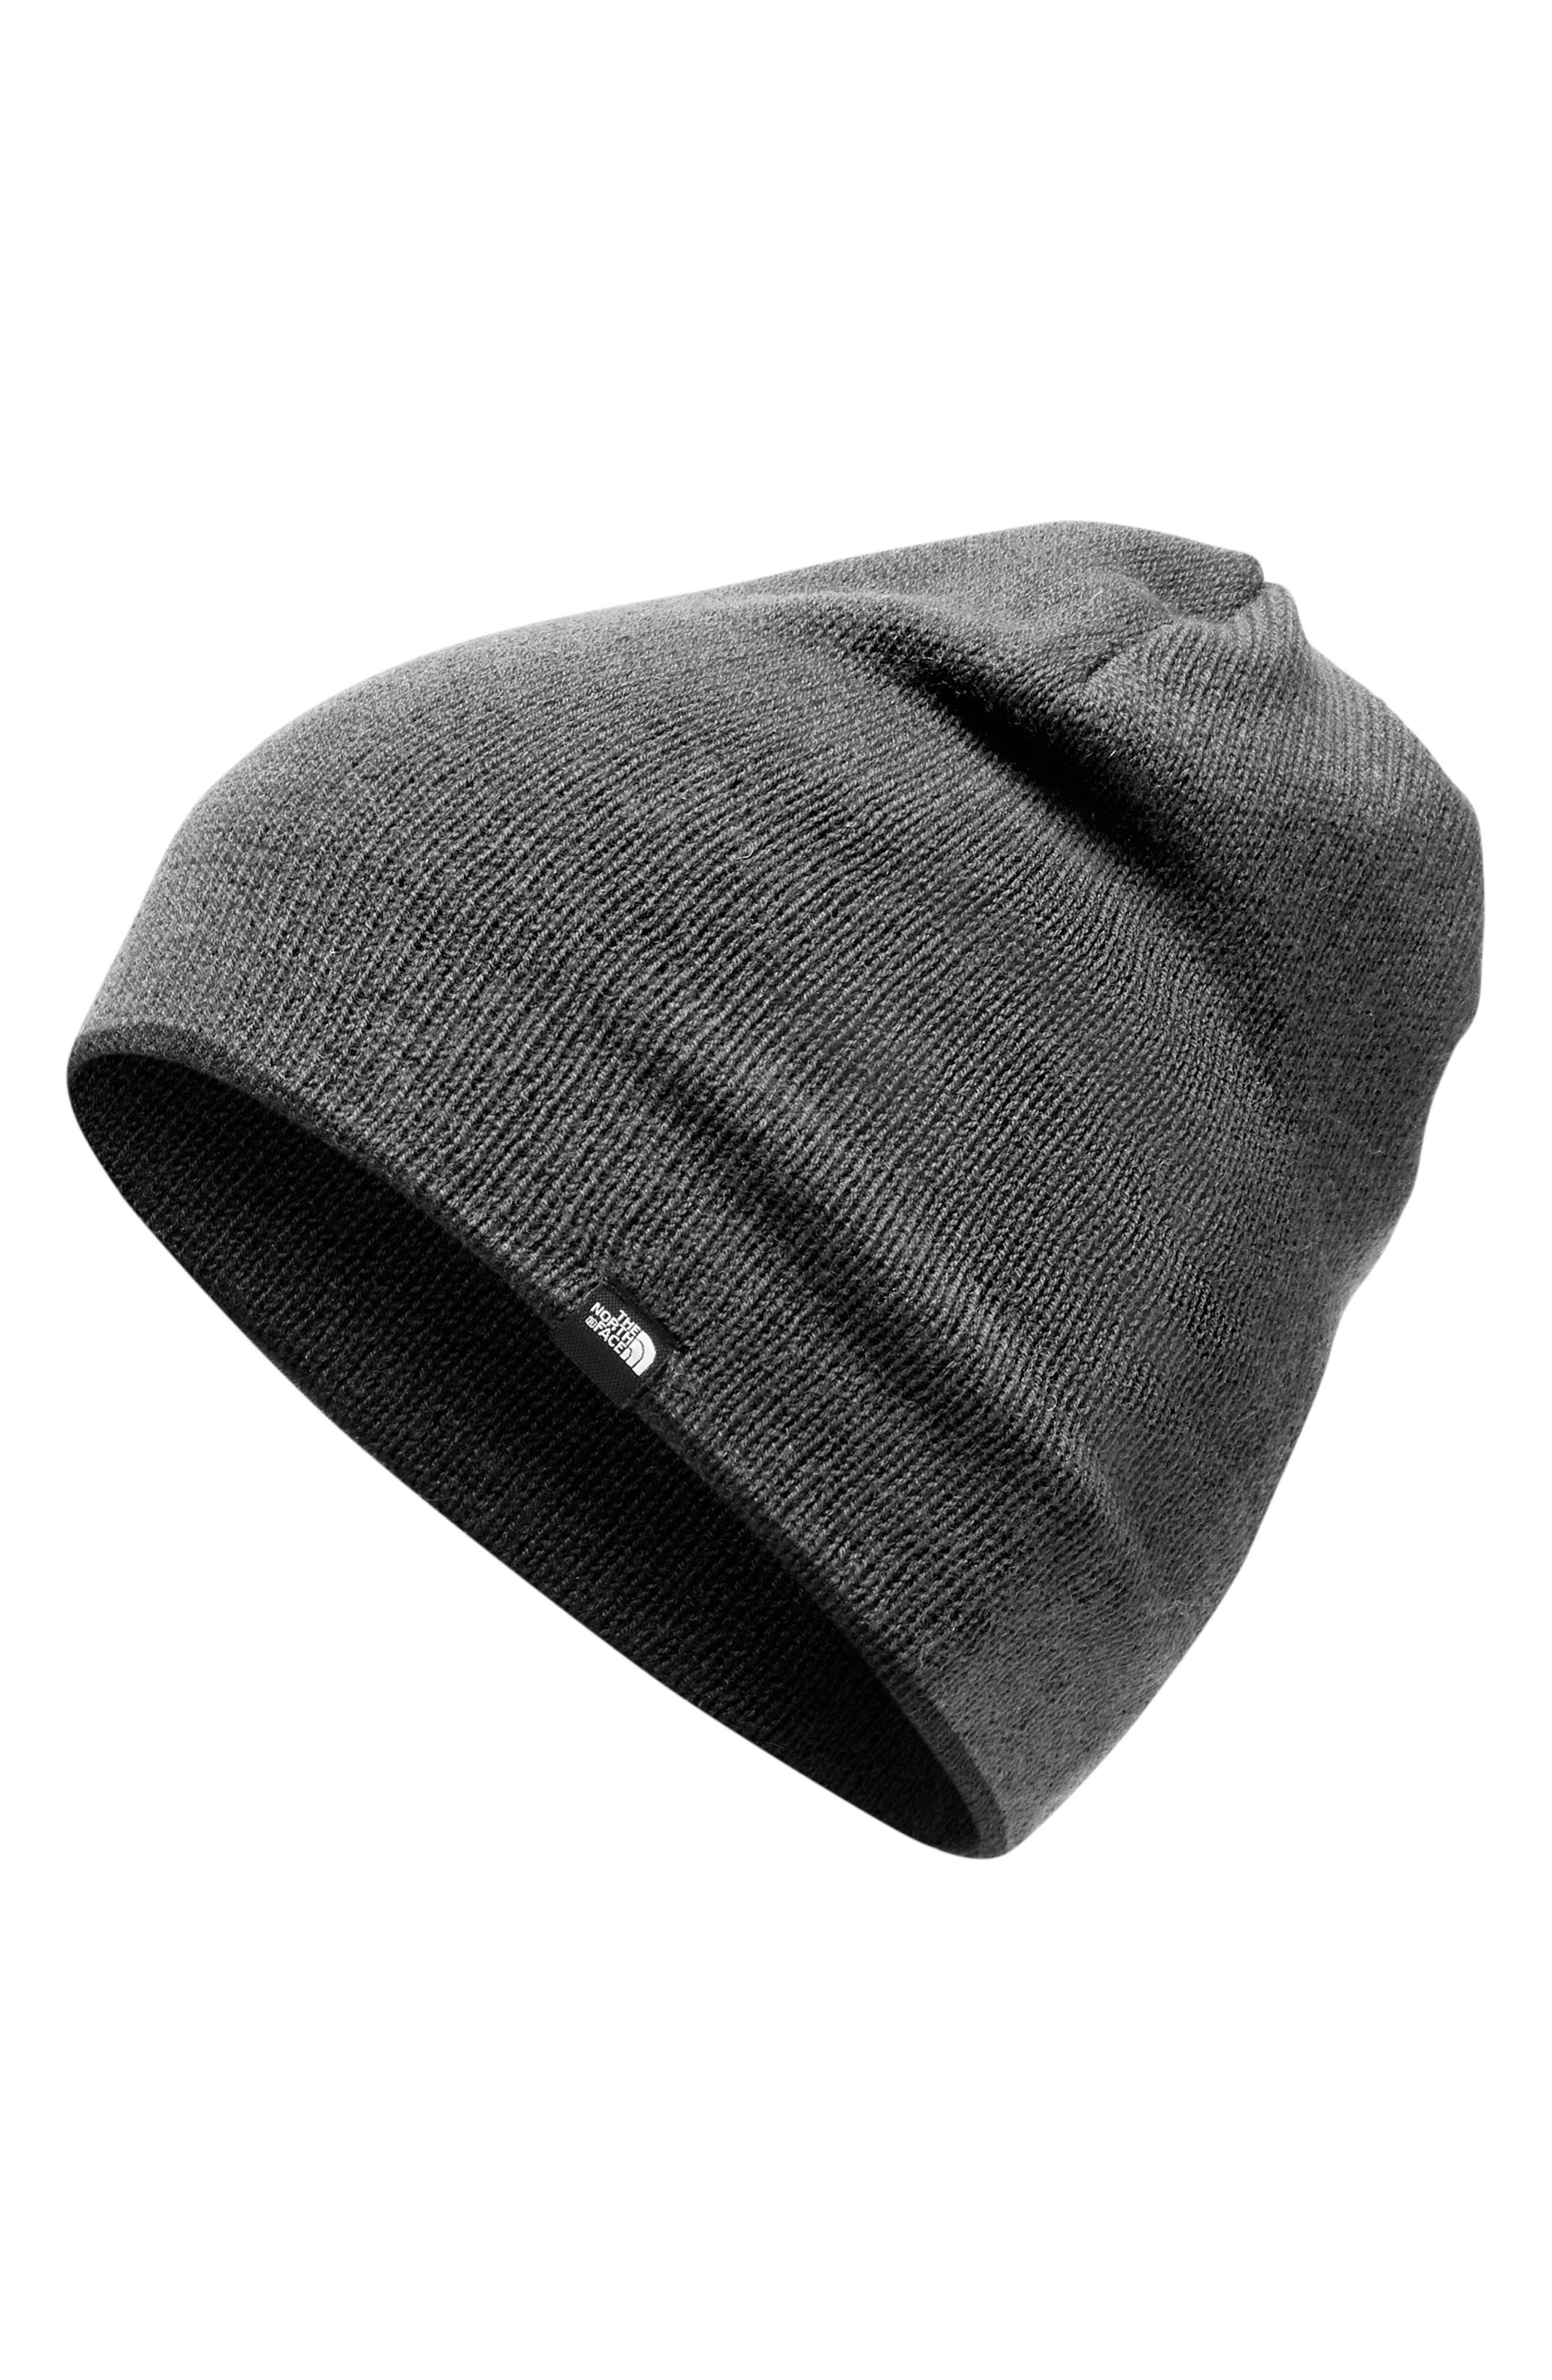 Reversible Merino Wool Beanie,                             Alternate thumbnail 2, color,                             BLACK/DARK GREY HEATHER